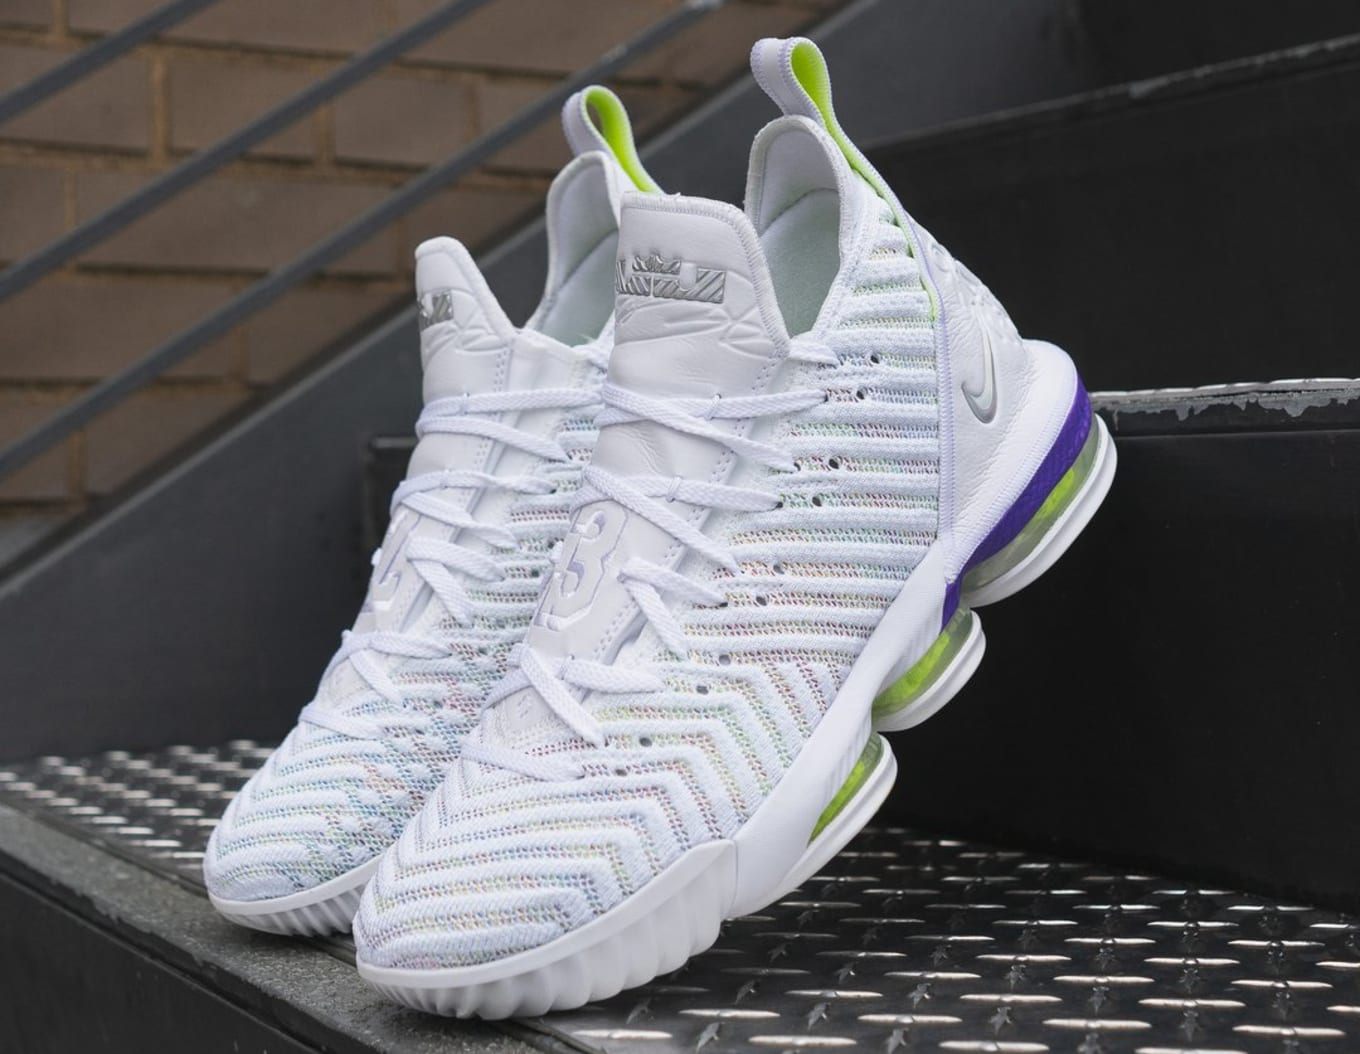 74643209d28 Nike LeBron 16 White/Multicolor-Hyper Grape-Volt AO2588-102 Release ...